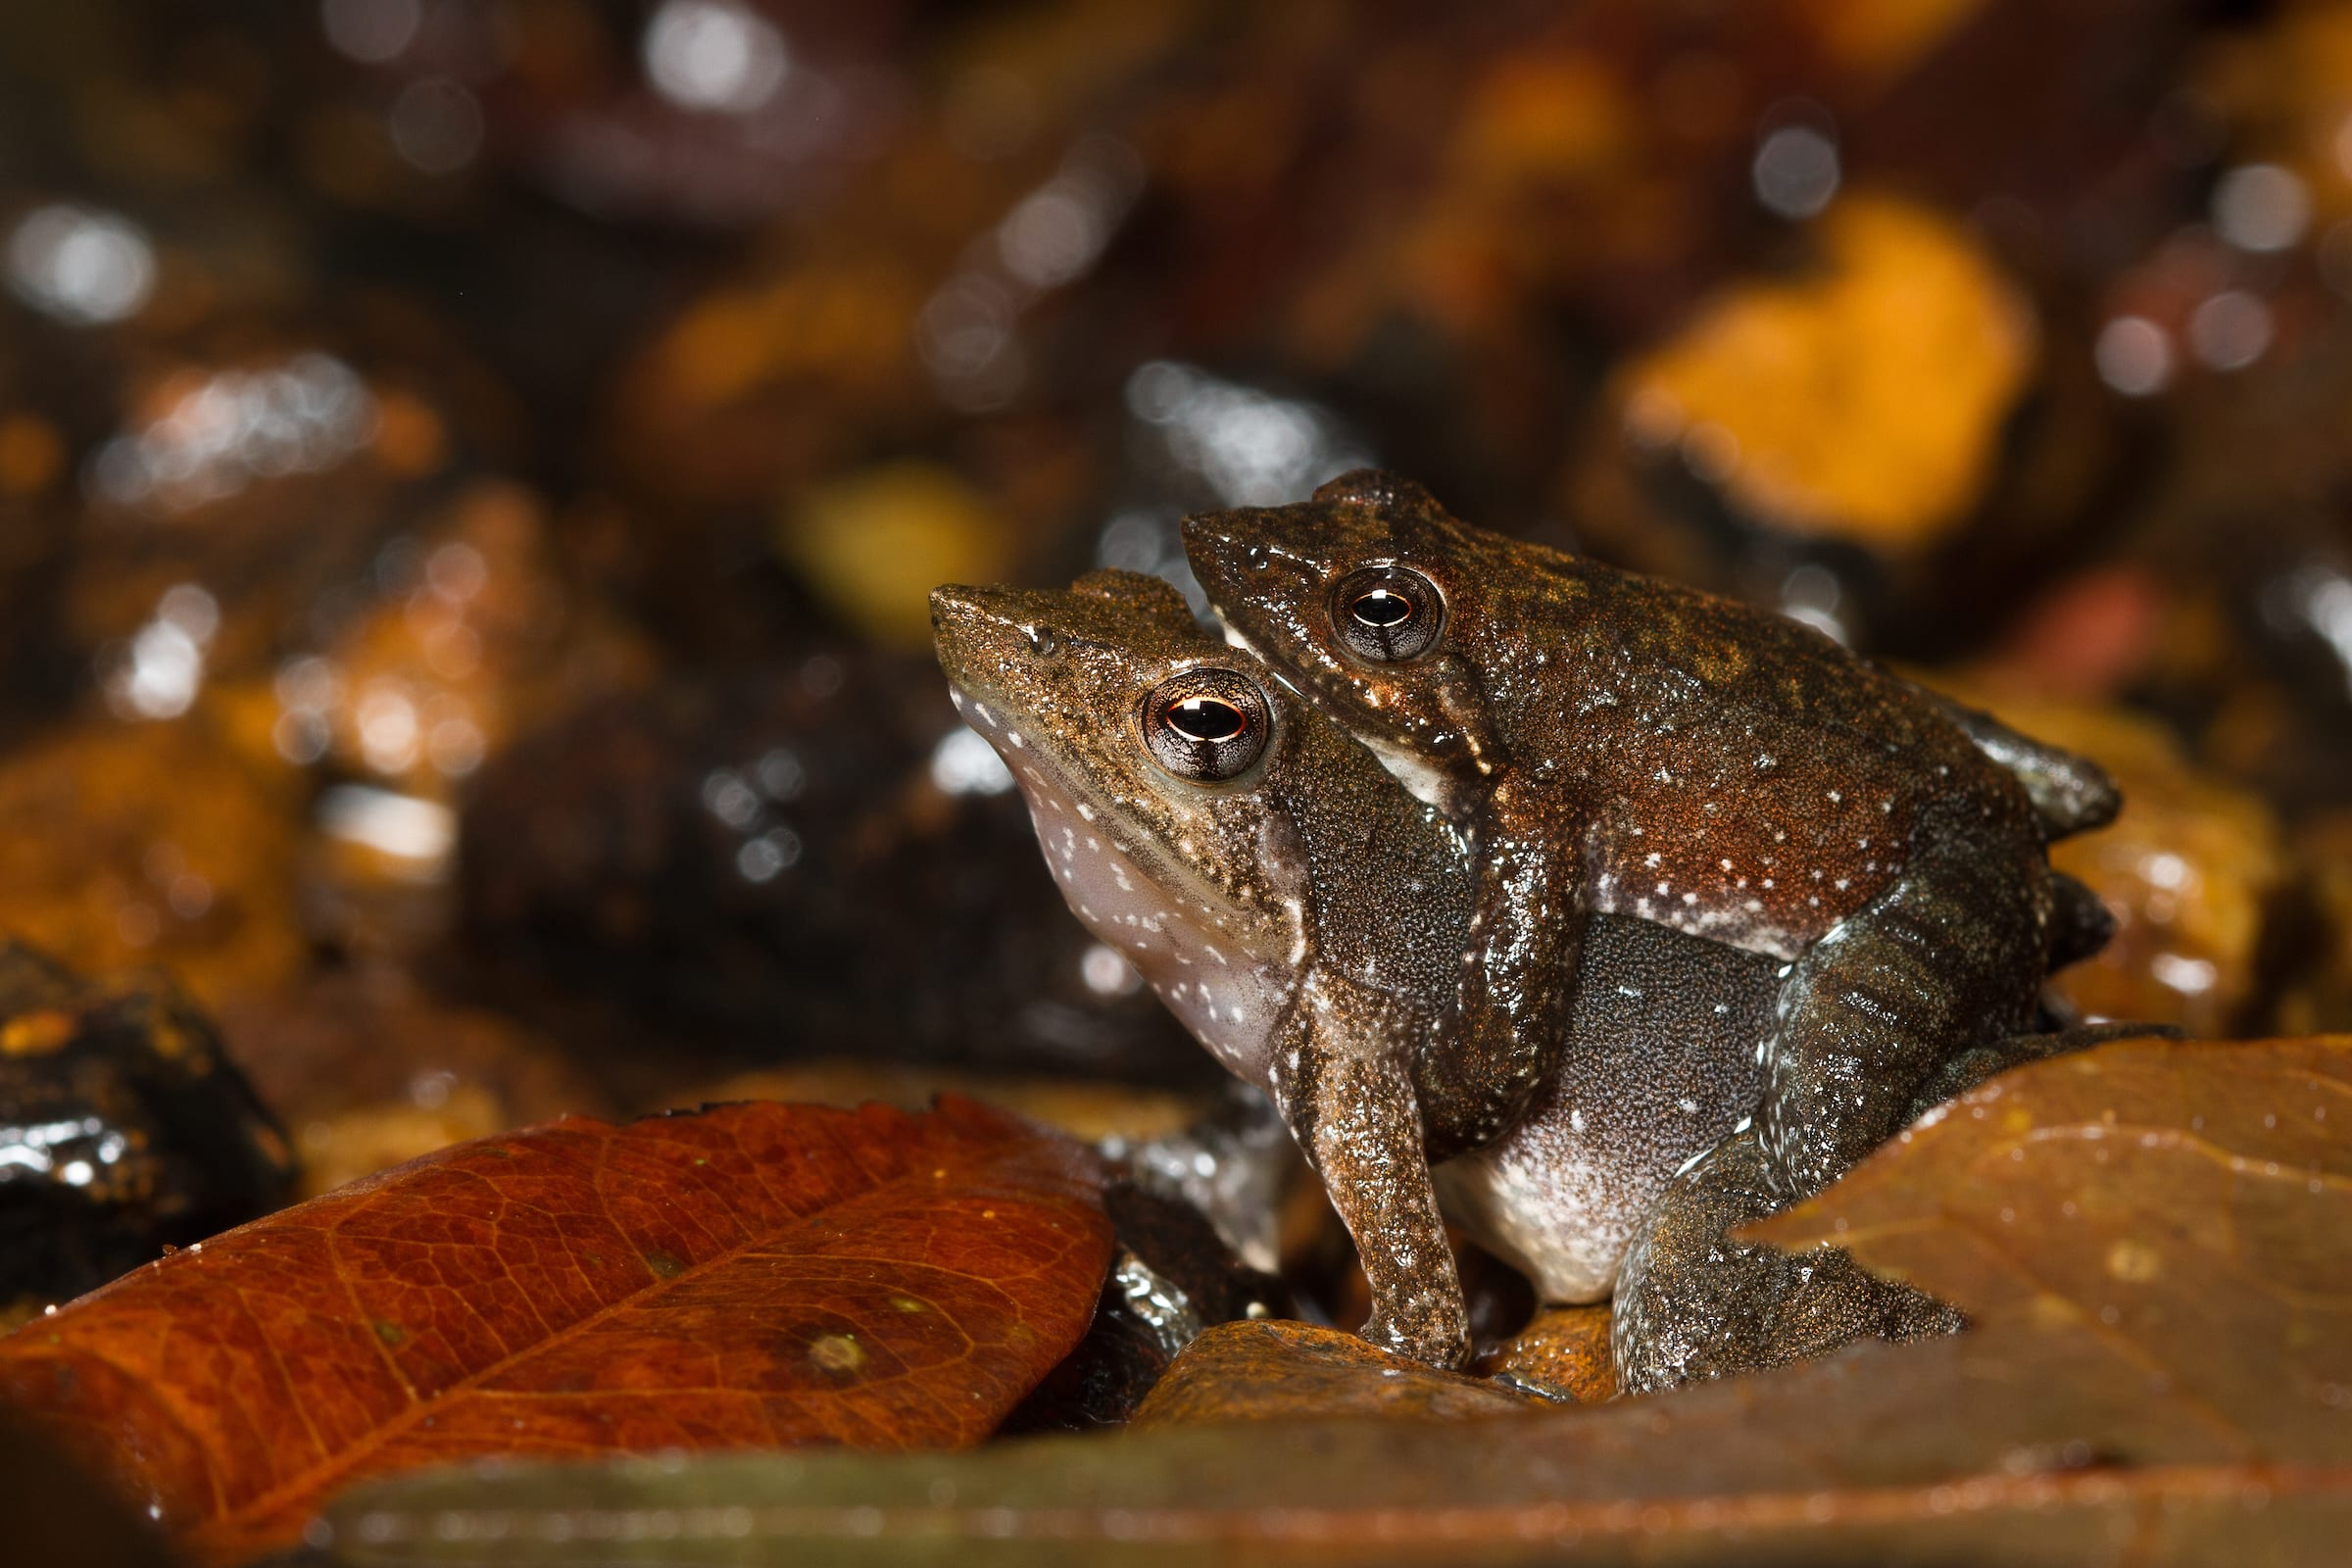 A female Kottigehar dancing frog is much larger than a male. During the mating ritual, the male takes a position on her back, holding her in a tight embrace, called amplexus, while they copulate. Photo: Shreeram MV  Cover: The Kottigehar dancing frog is endemic to the Western Ghats, where it can often be spotted along a forest's perennial streams. Cover photo: Shreeram MV